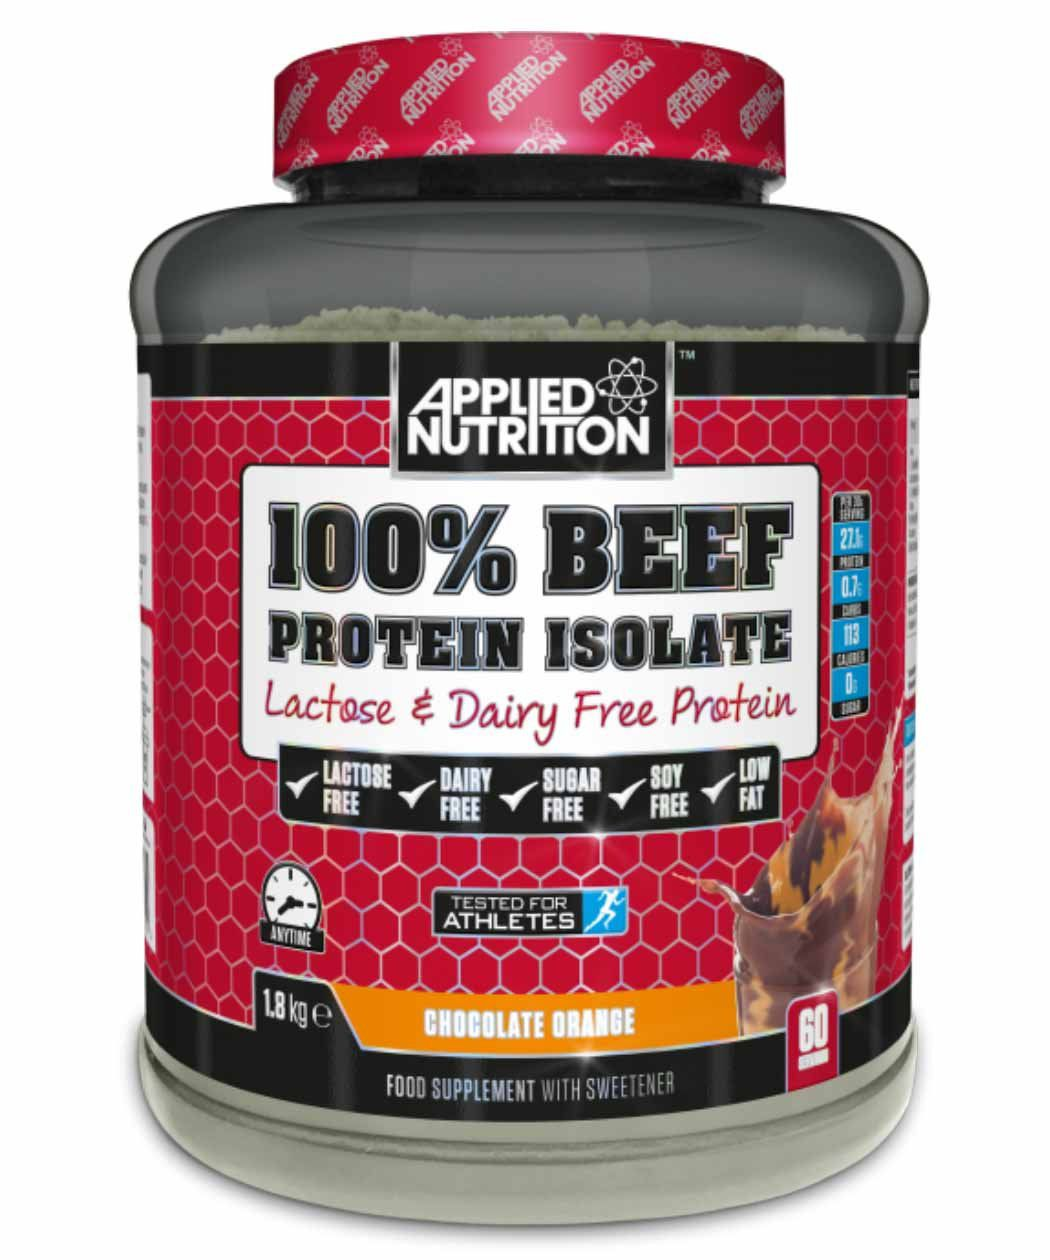 Applied Nutrition 100% Beef Protein Isolate 1.8kg